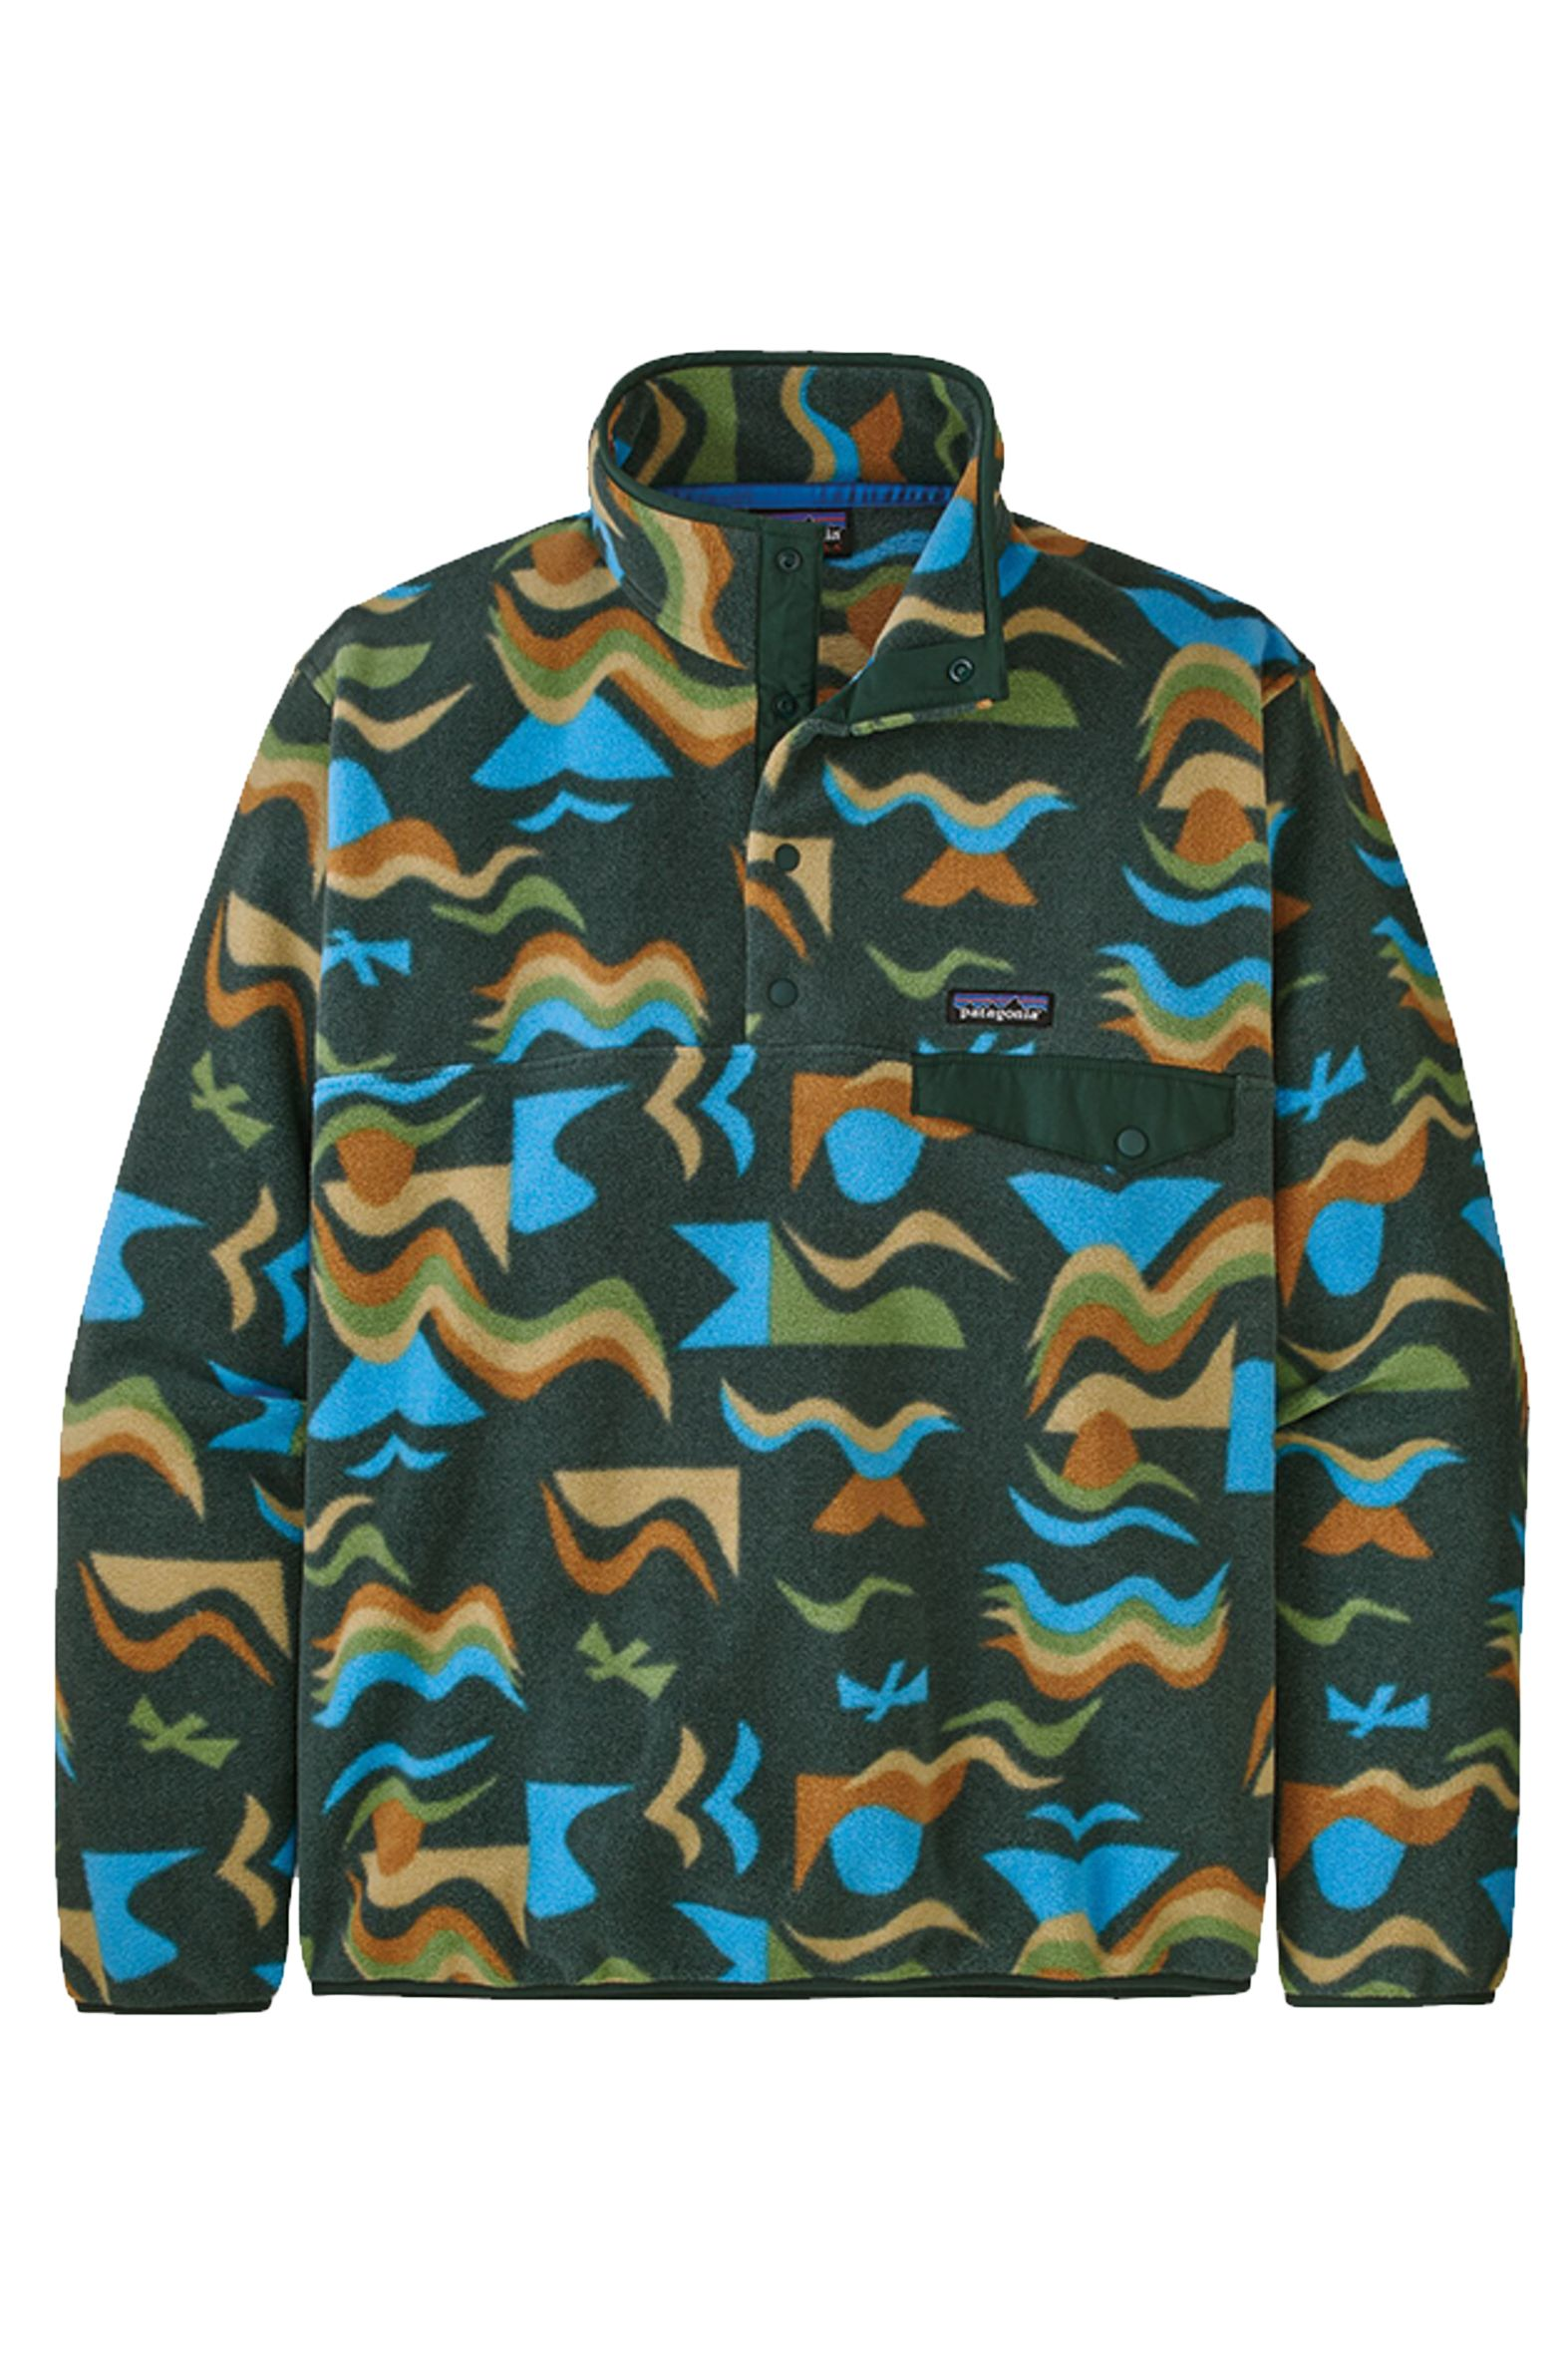 Sweat Polar Patagonia M'S LW SYNCH SNAP-T P/O - EU FIT Arctic Collage: Northern Green